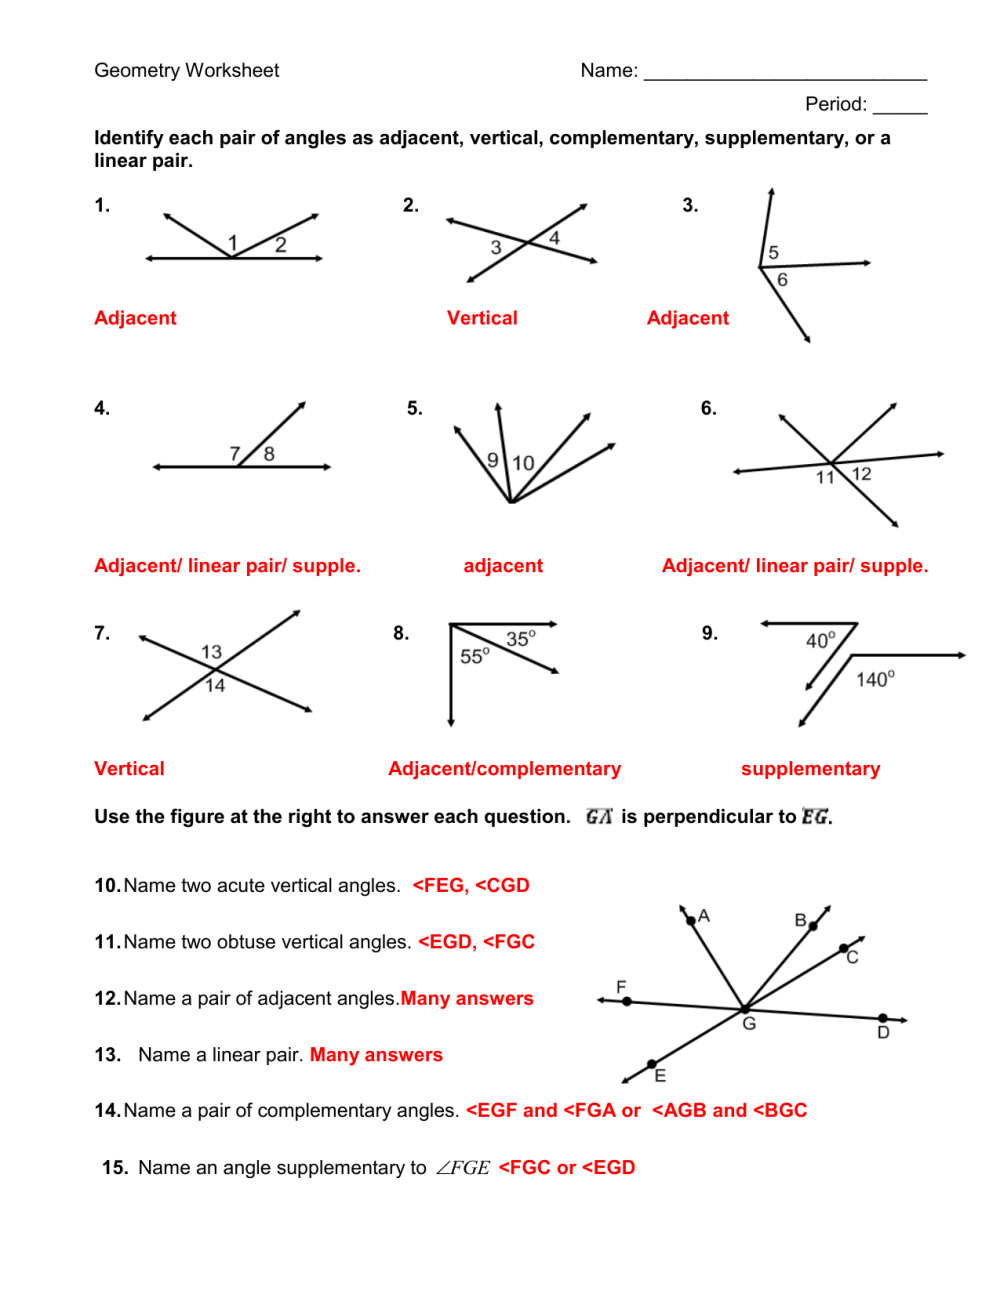 medium resolution of Identify each pair of angles as adjacent